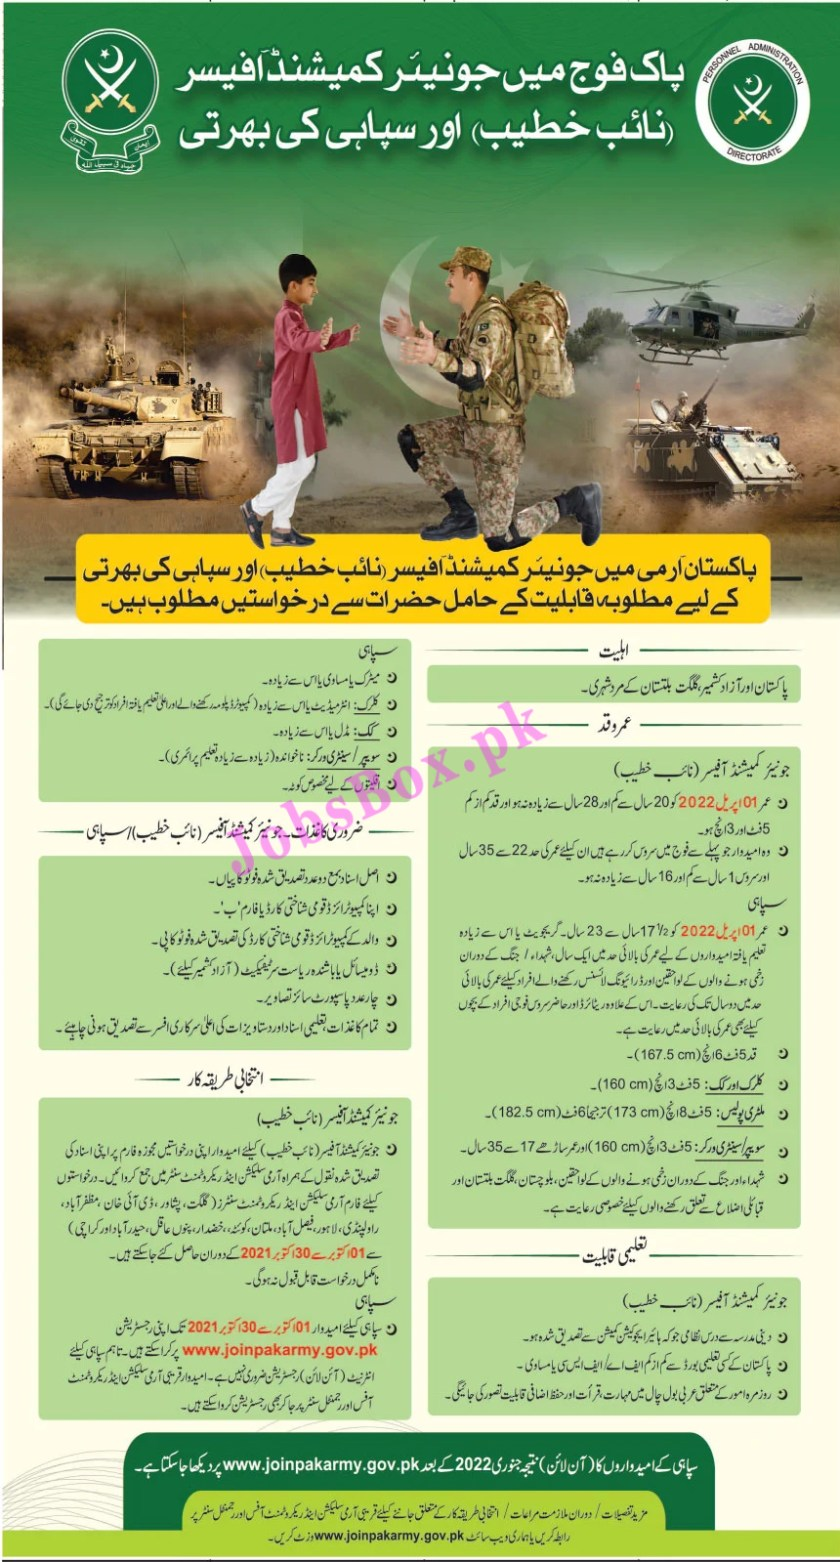 Join Pak Army Jobs 2021 - Online Registration - Apply